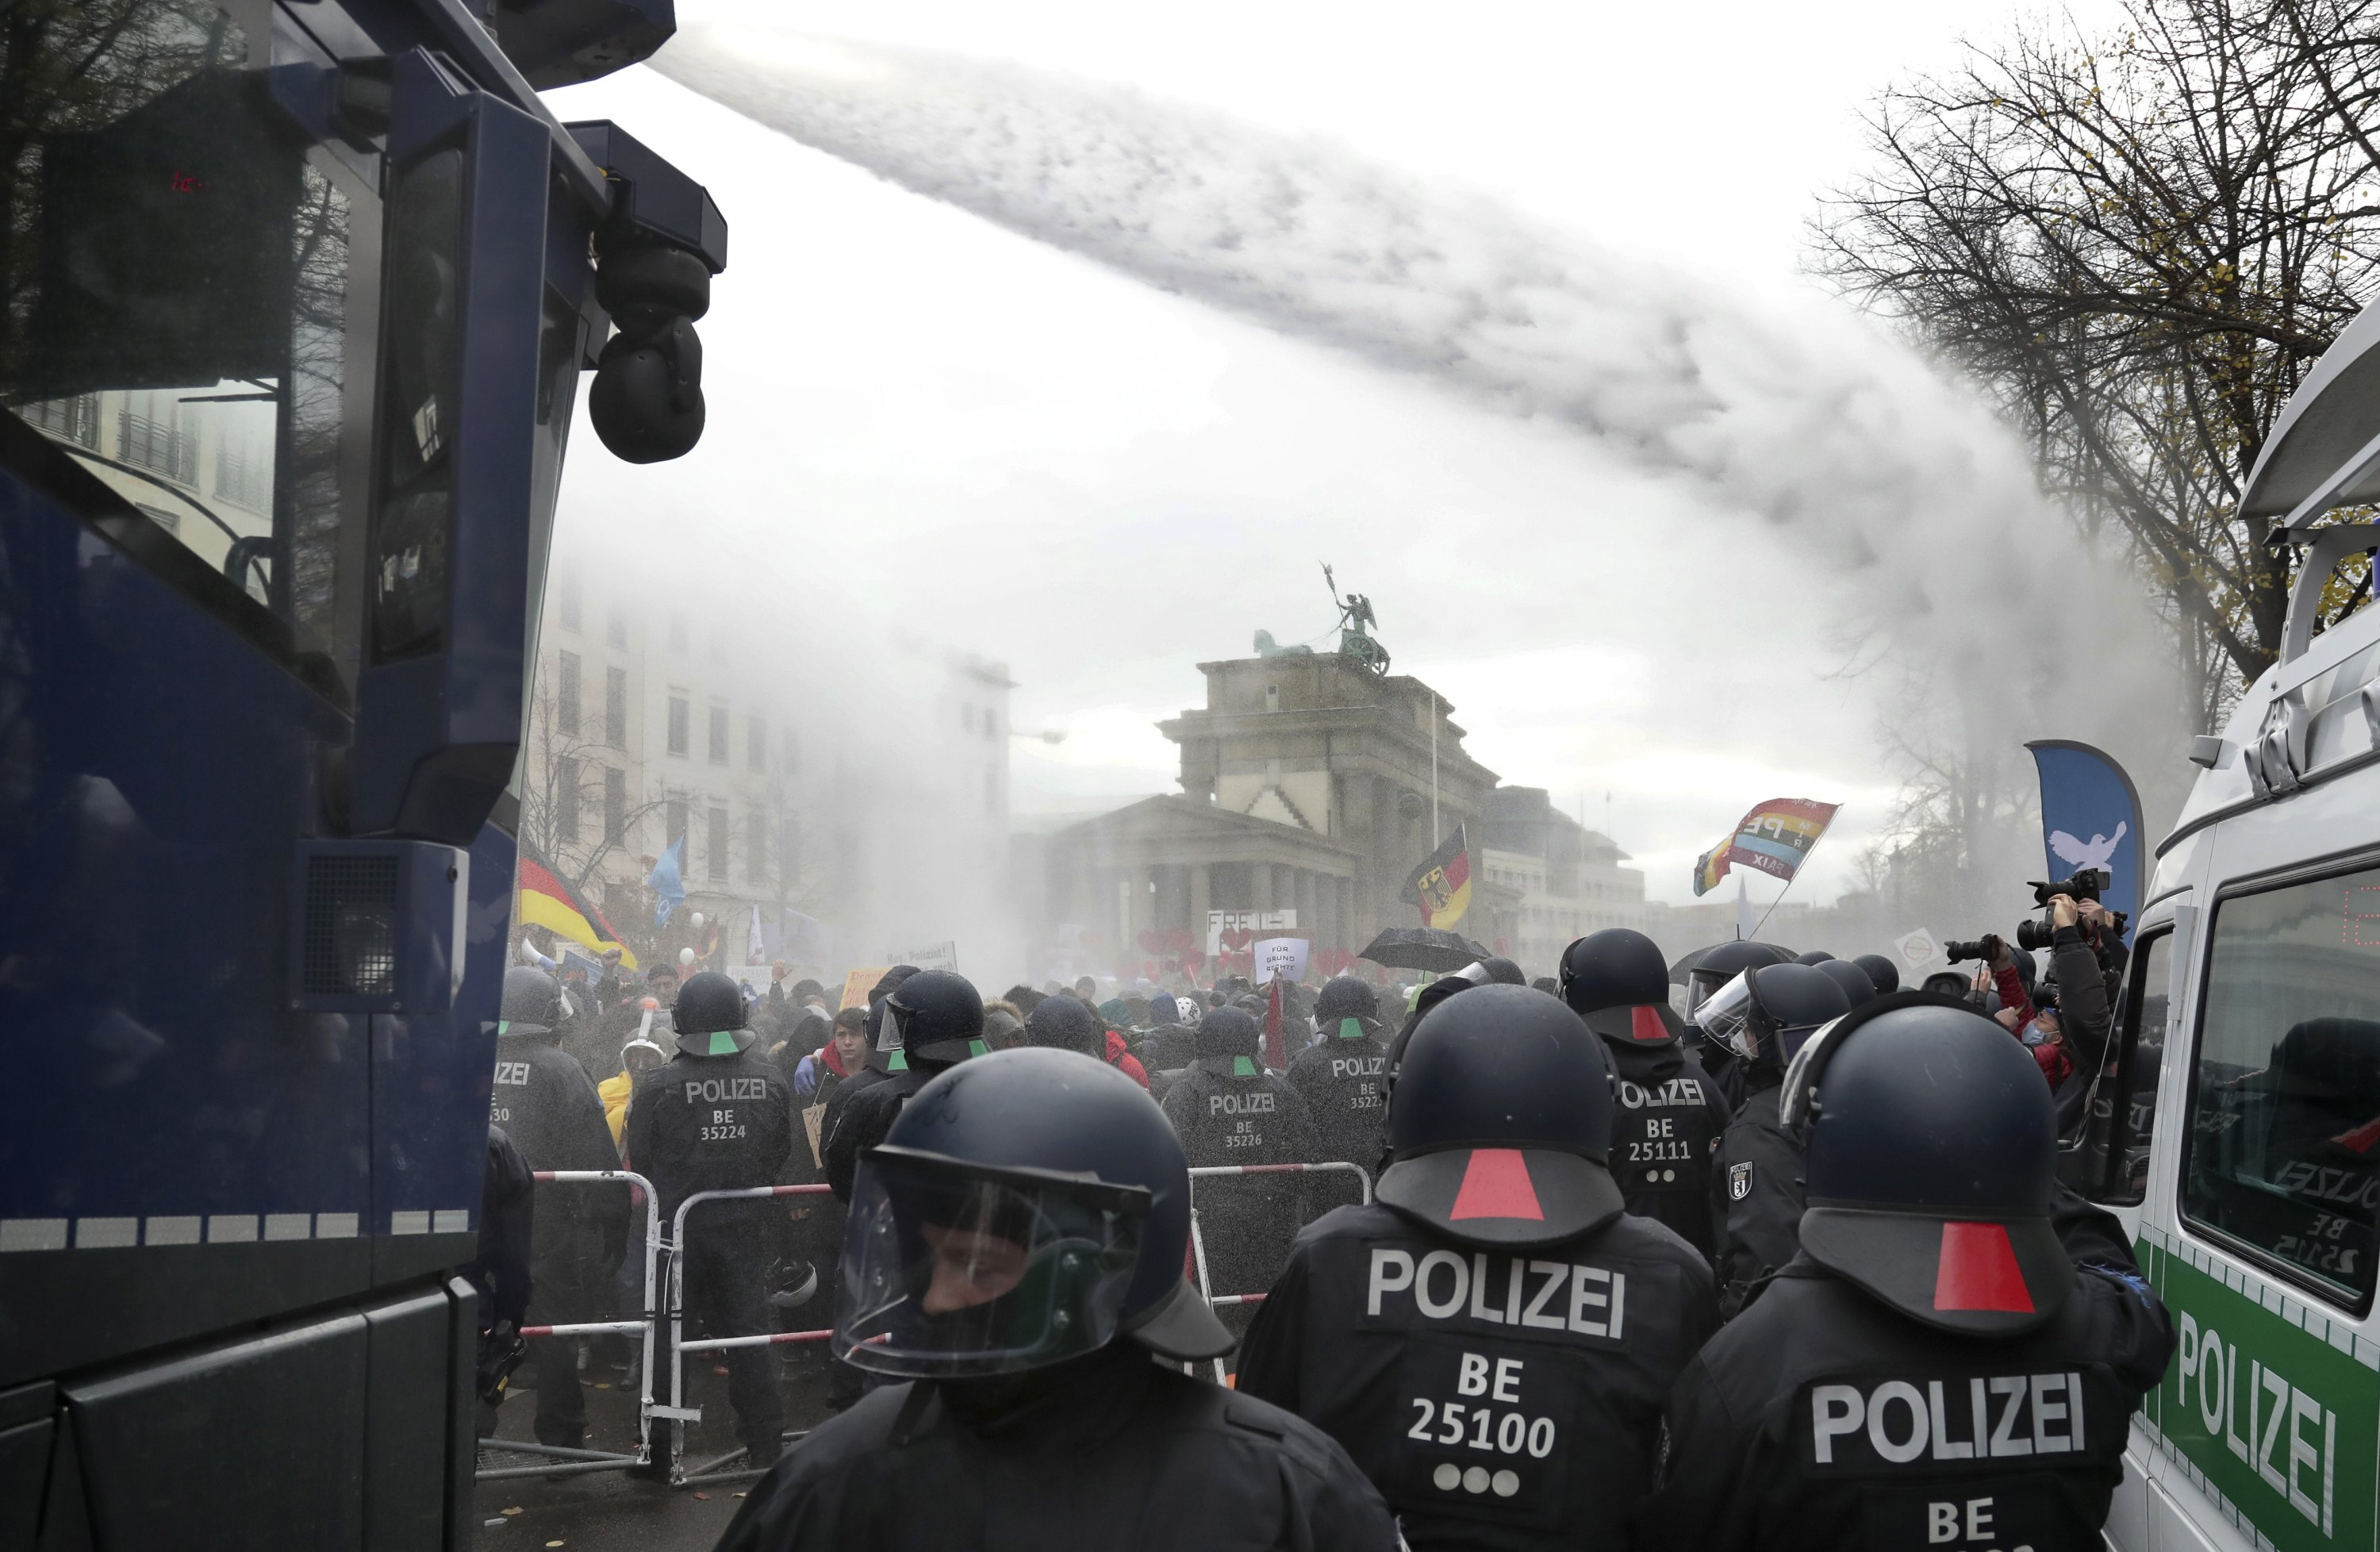 Police use water cannons to clear a blocked road between the Brandenburg Gate and the Reichstag building, home of the German federal parliament, as people attend a protest rally against the coronavirus restrictions in Berlin, Germany, Nov. 18, 2020. (AP Photo)